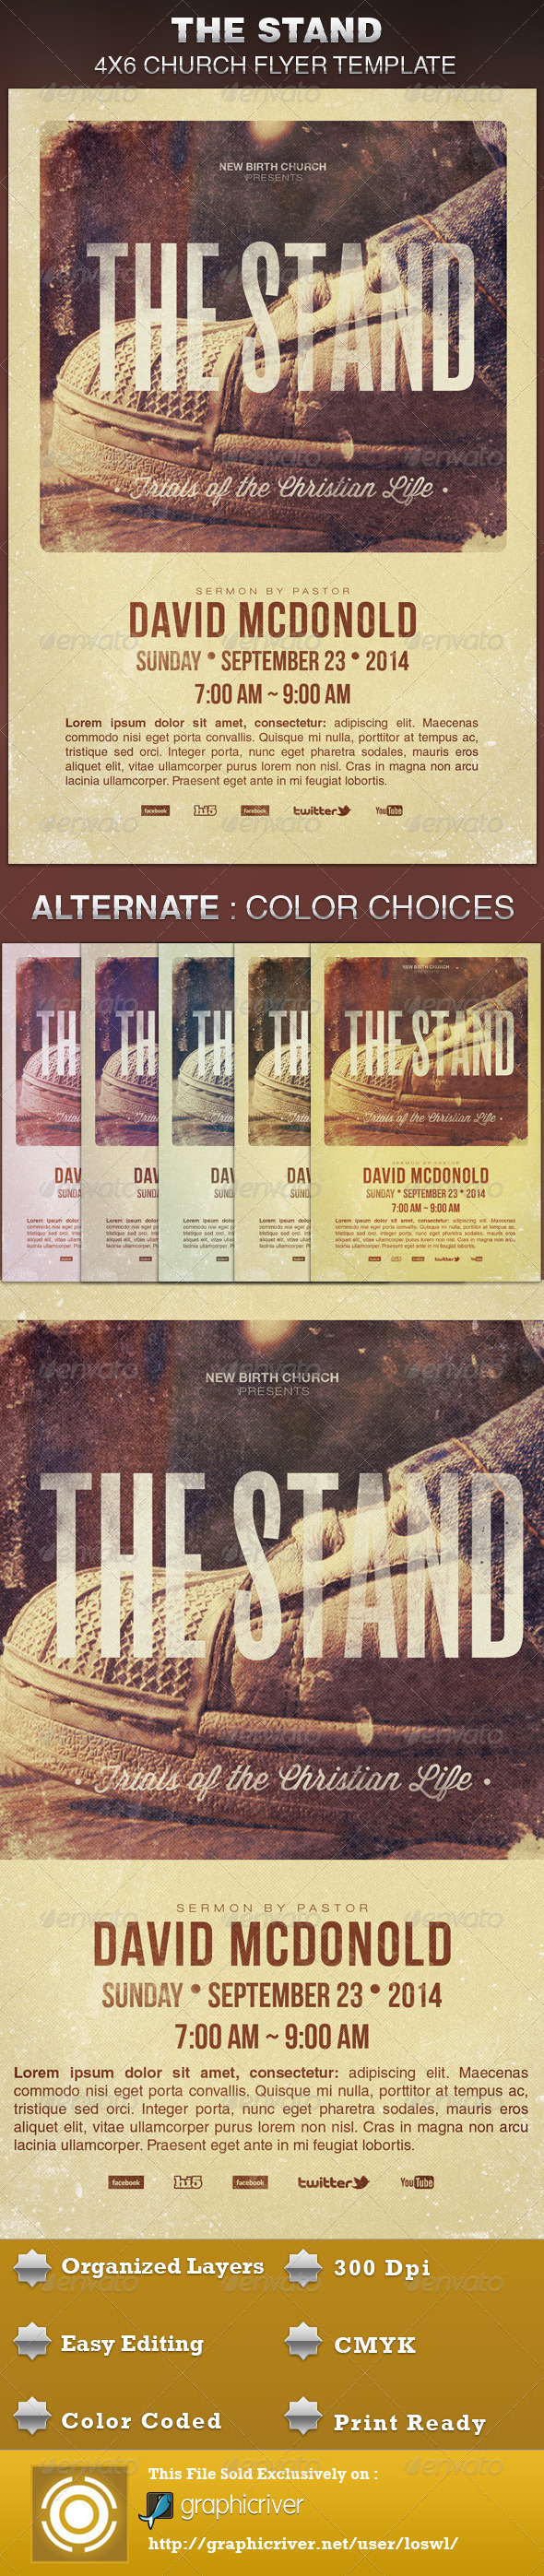 GraphicRiver The Stand Church Flyer Template 5722379